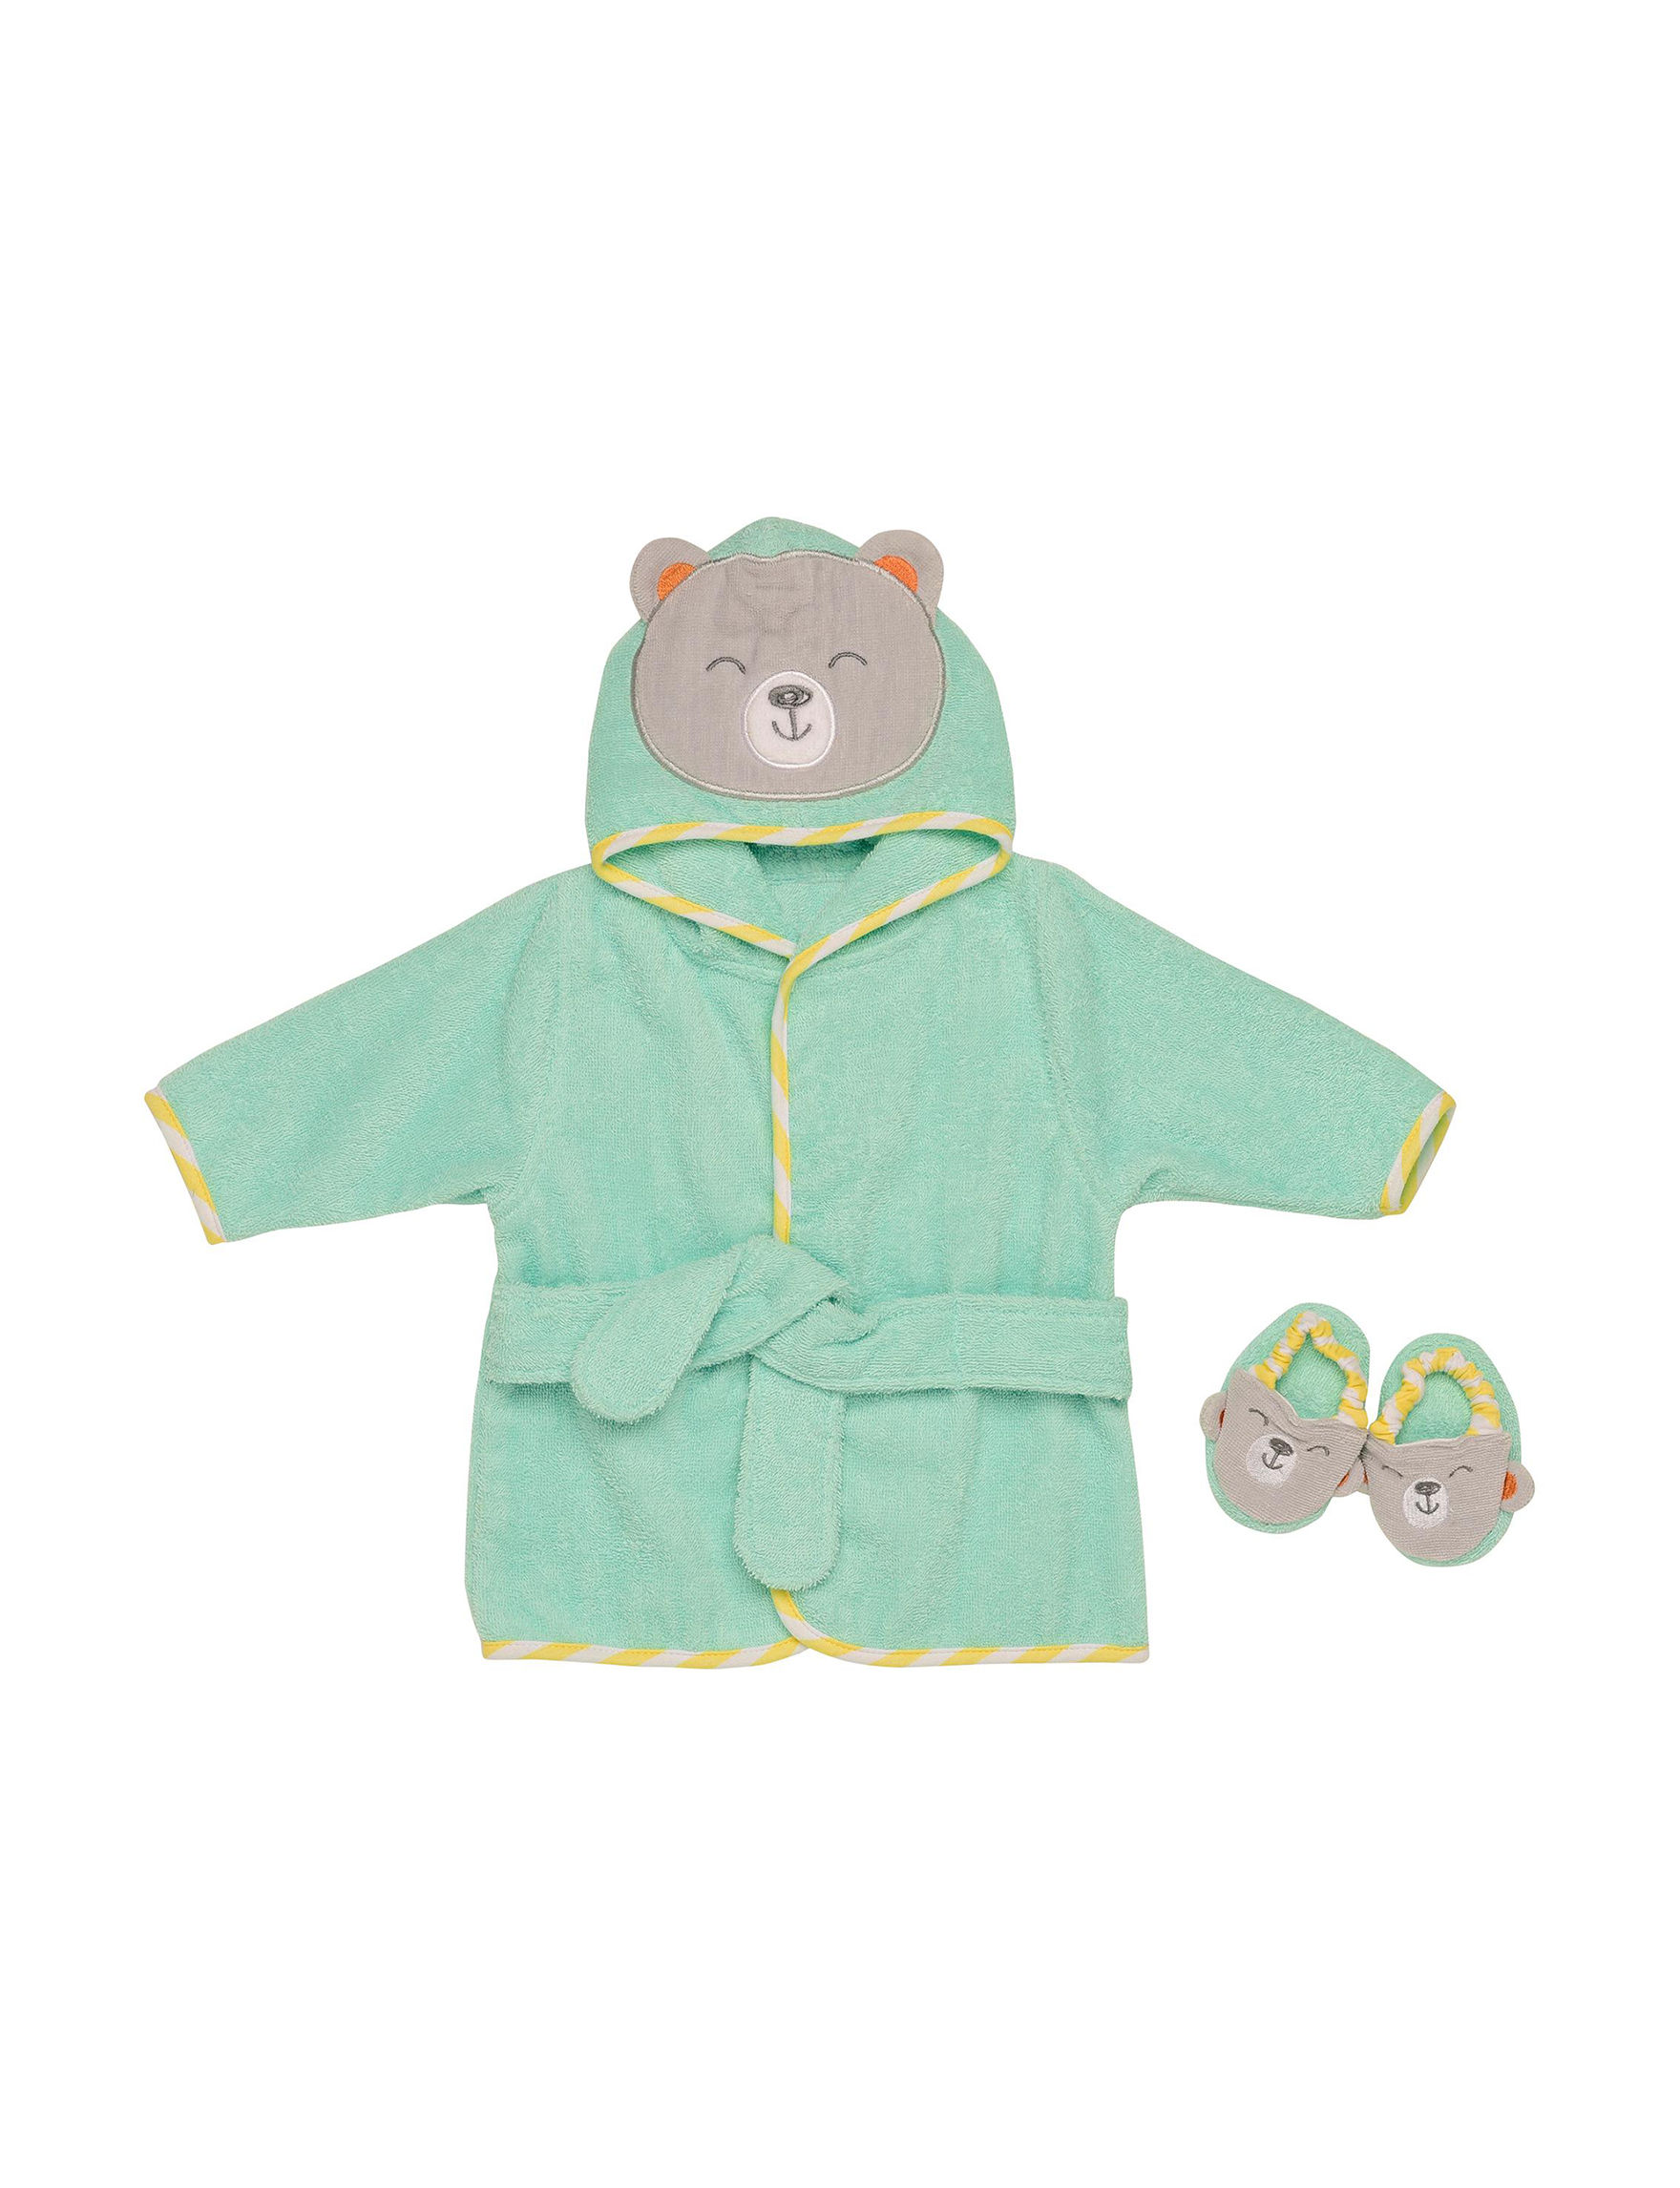 Baby Starters Light Green Baby Robes Hooded Towels